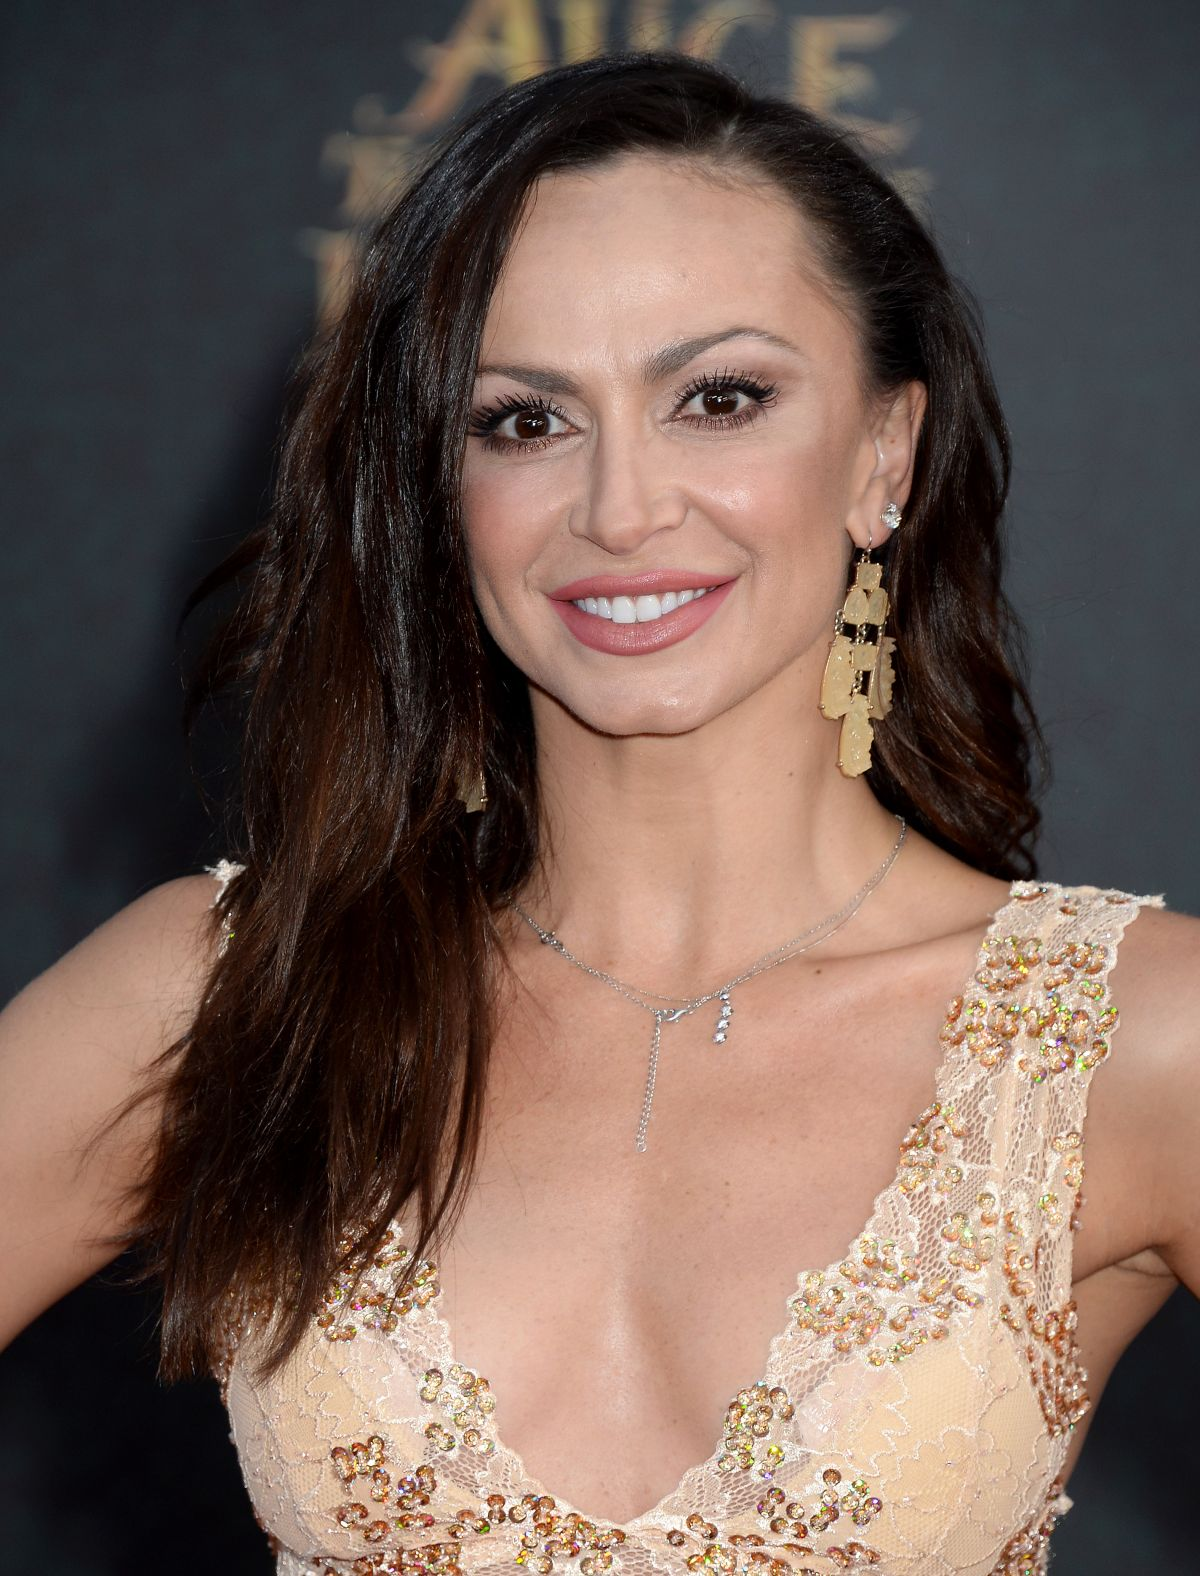 Karina Smirnoff naked (32 photo) Boobs, Snapchat, lingerie